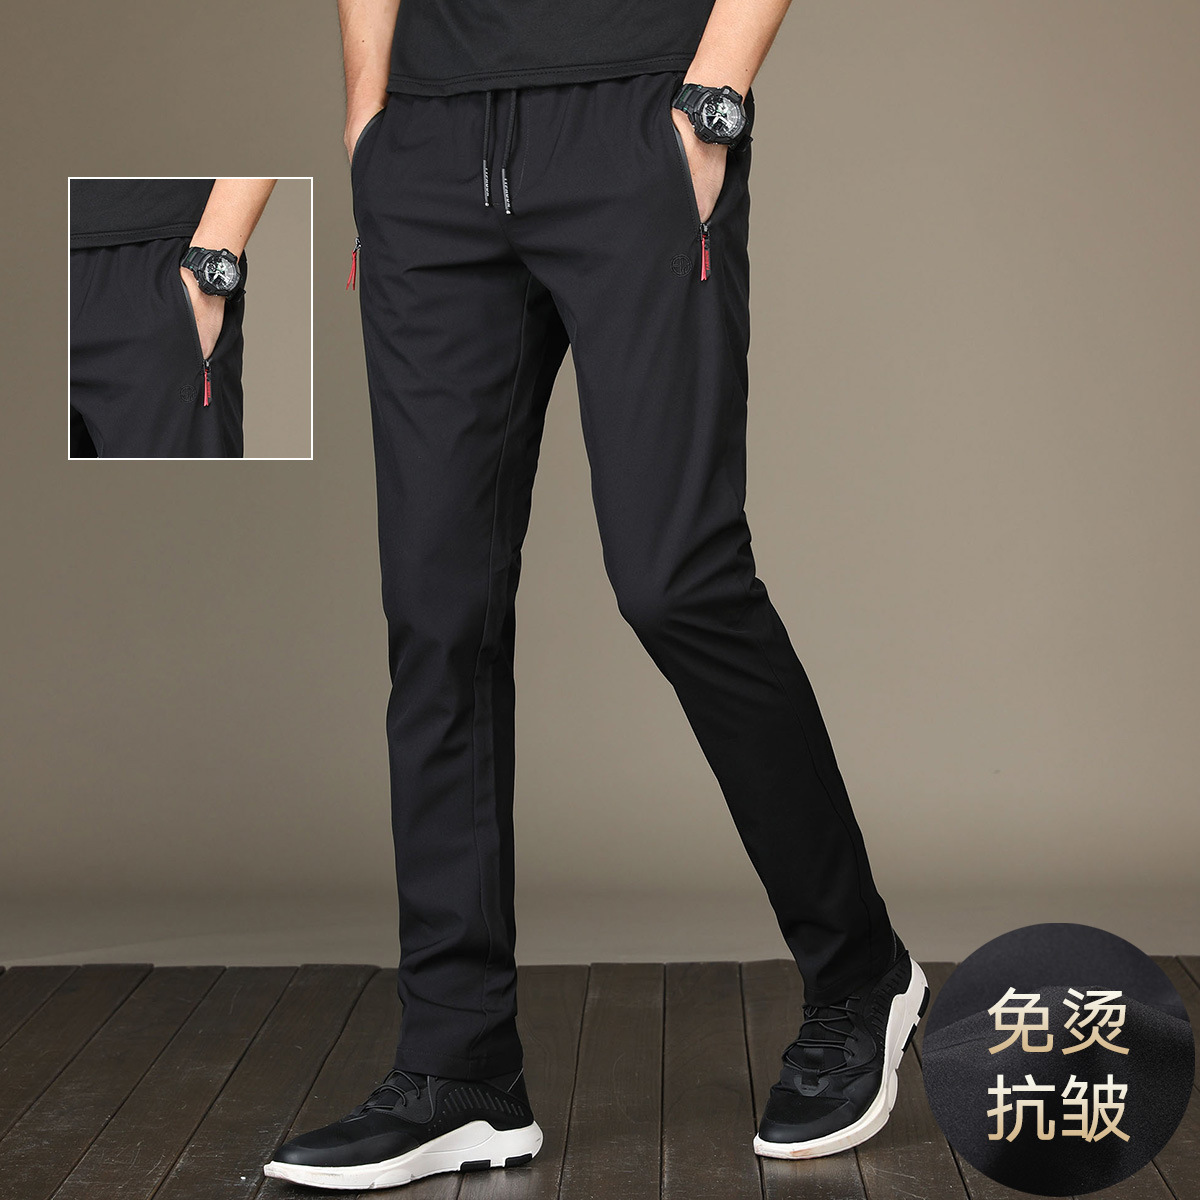 Casual Pants Elasticity Black And White With Pattern Youth Trousers Quick-Dry Slim Fit Elastic Wei Pants Men's Spring Loose-Fit